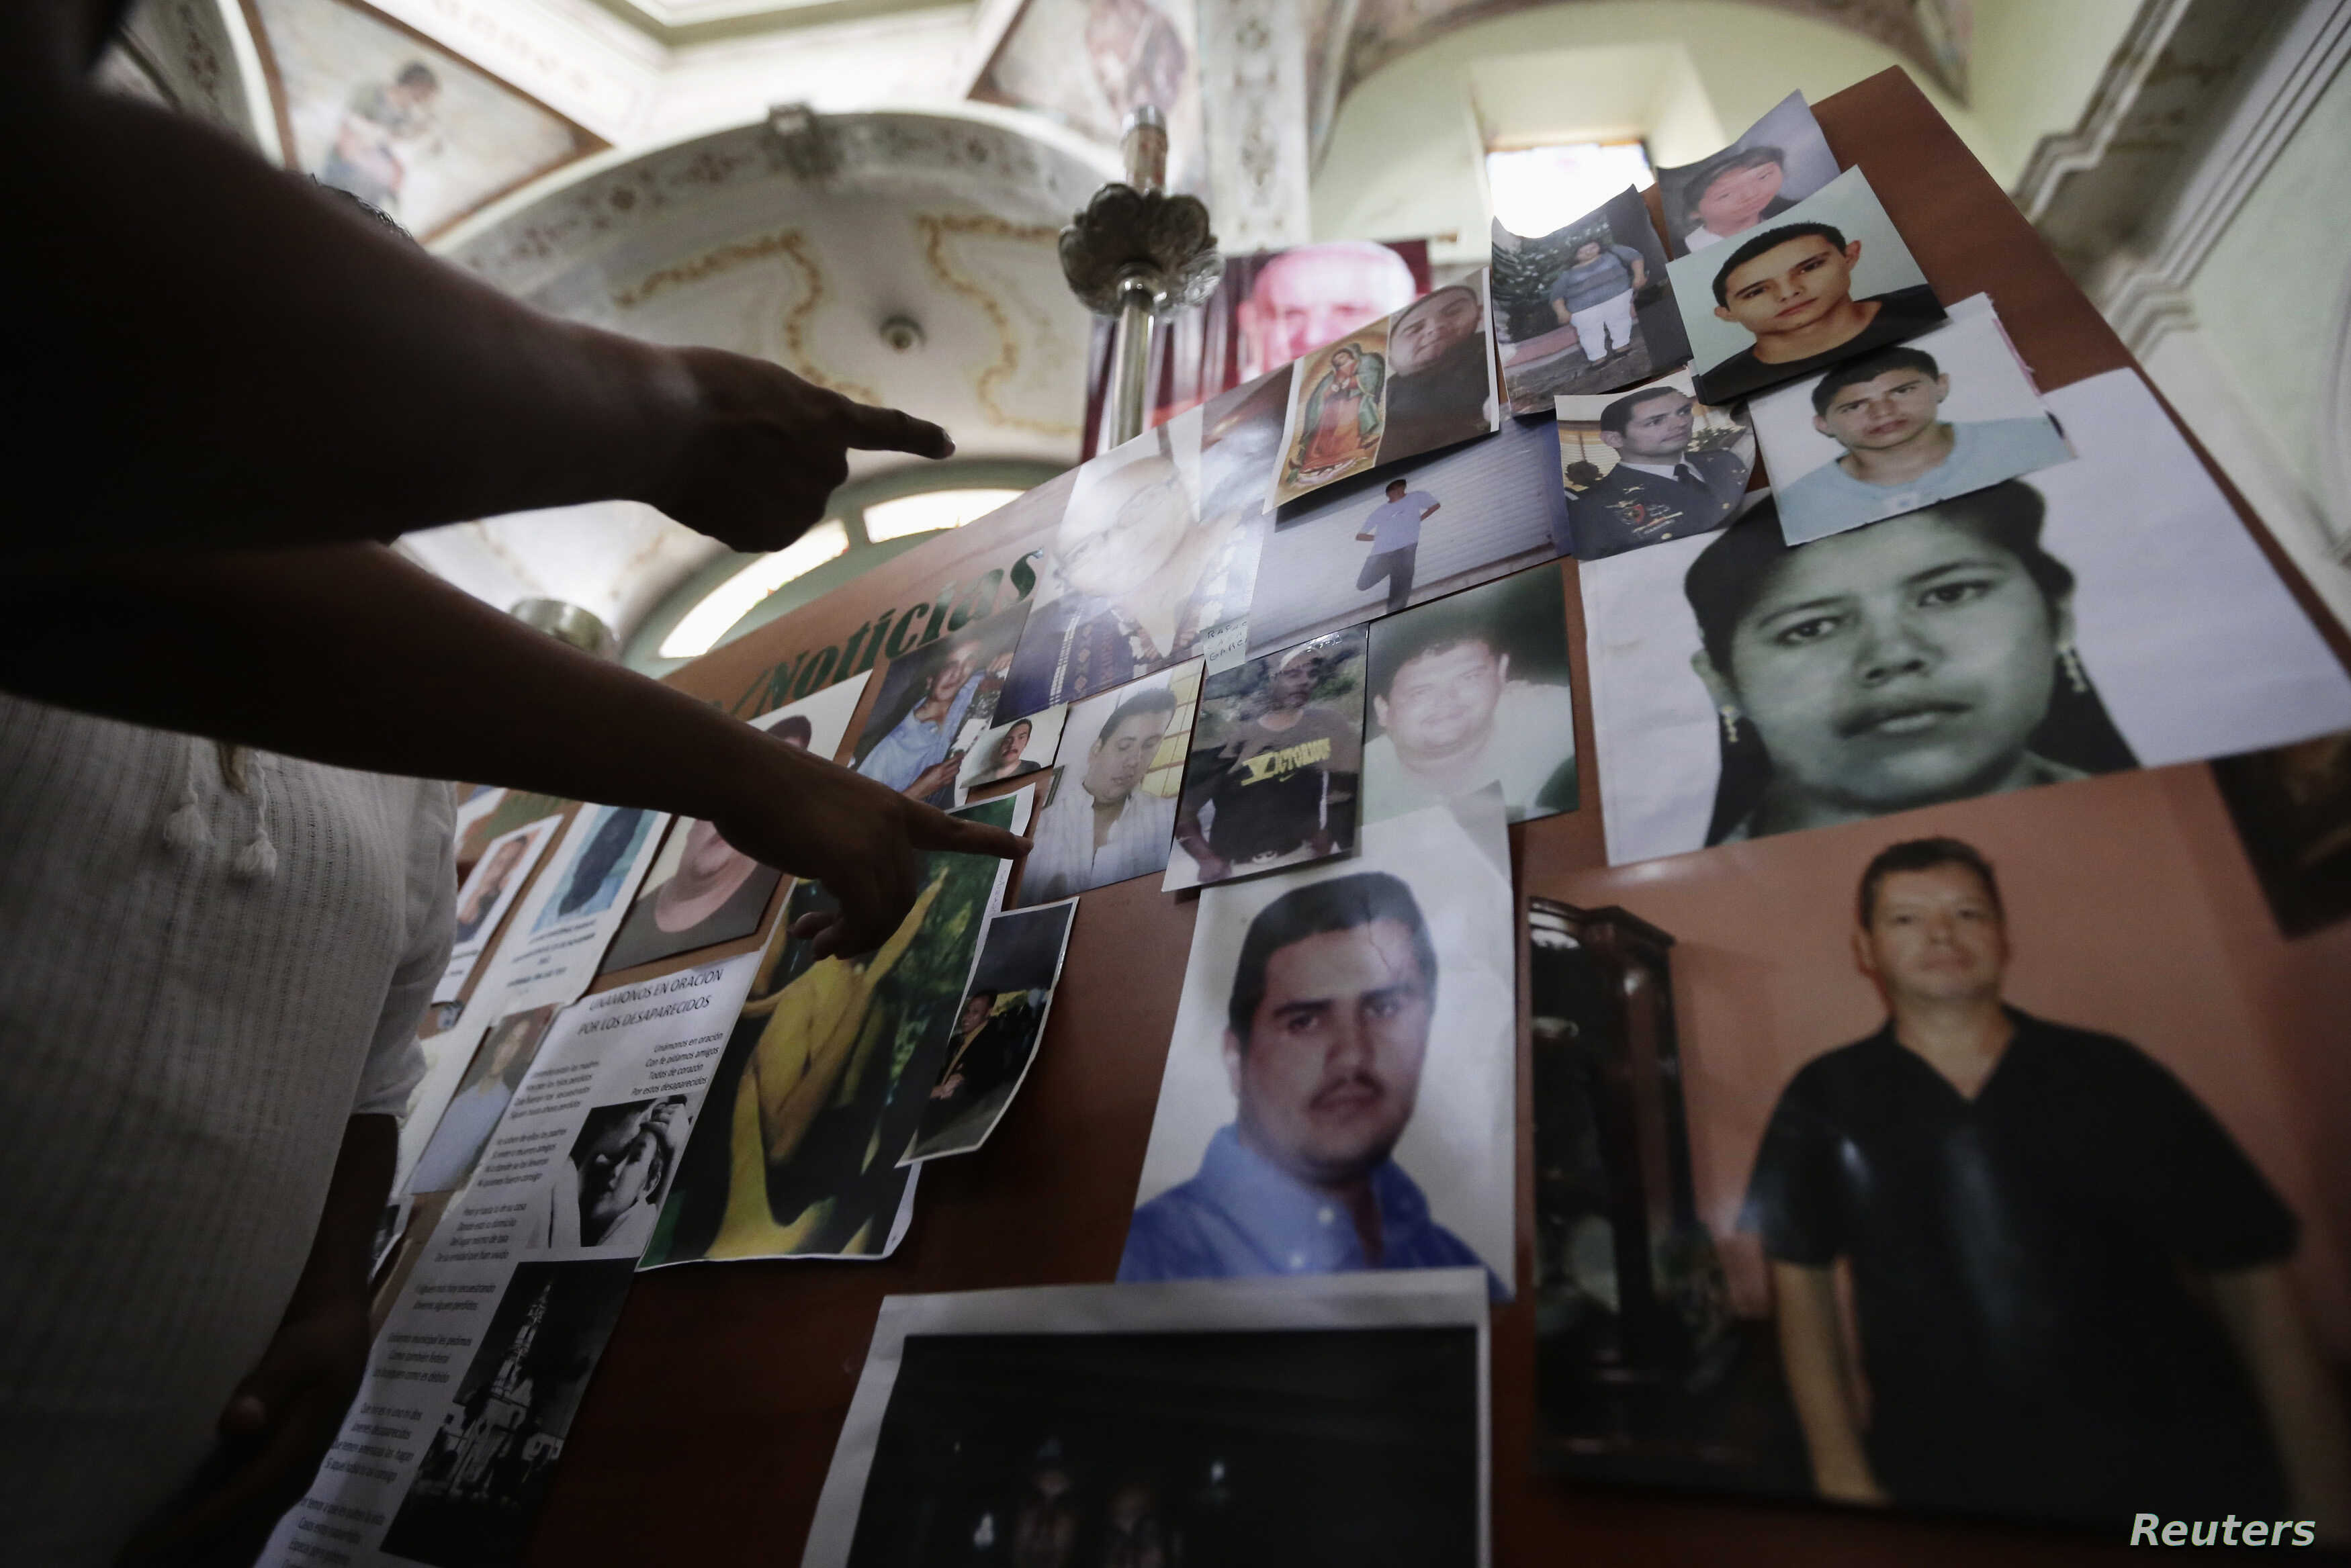 A parishioner points at photographs of missing persons during a mass to commemorate the International Day of the Victims of Enforced Disappearances in San Francisco de Asis church in Tala, in Jalisco state, Mexico, Aug. 31, 2014.